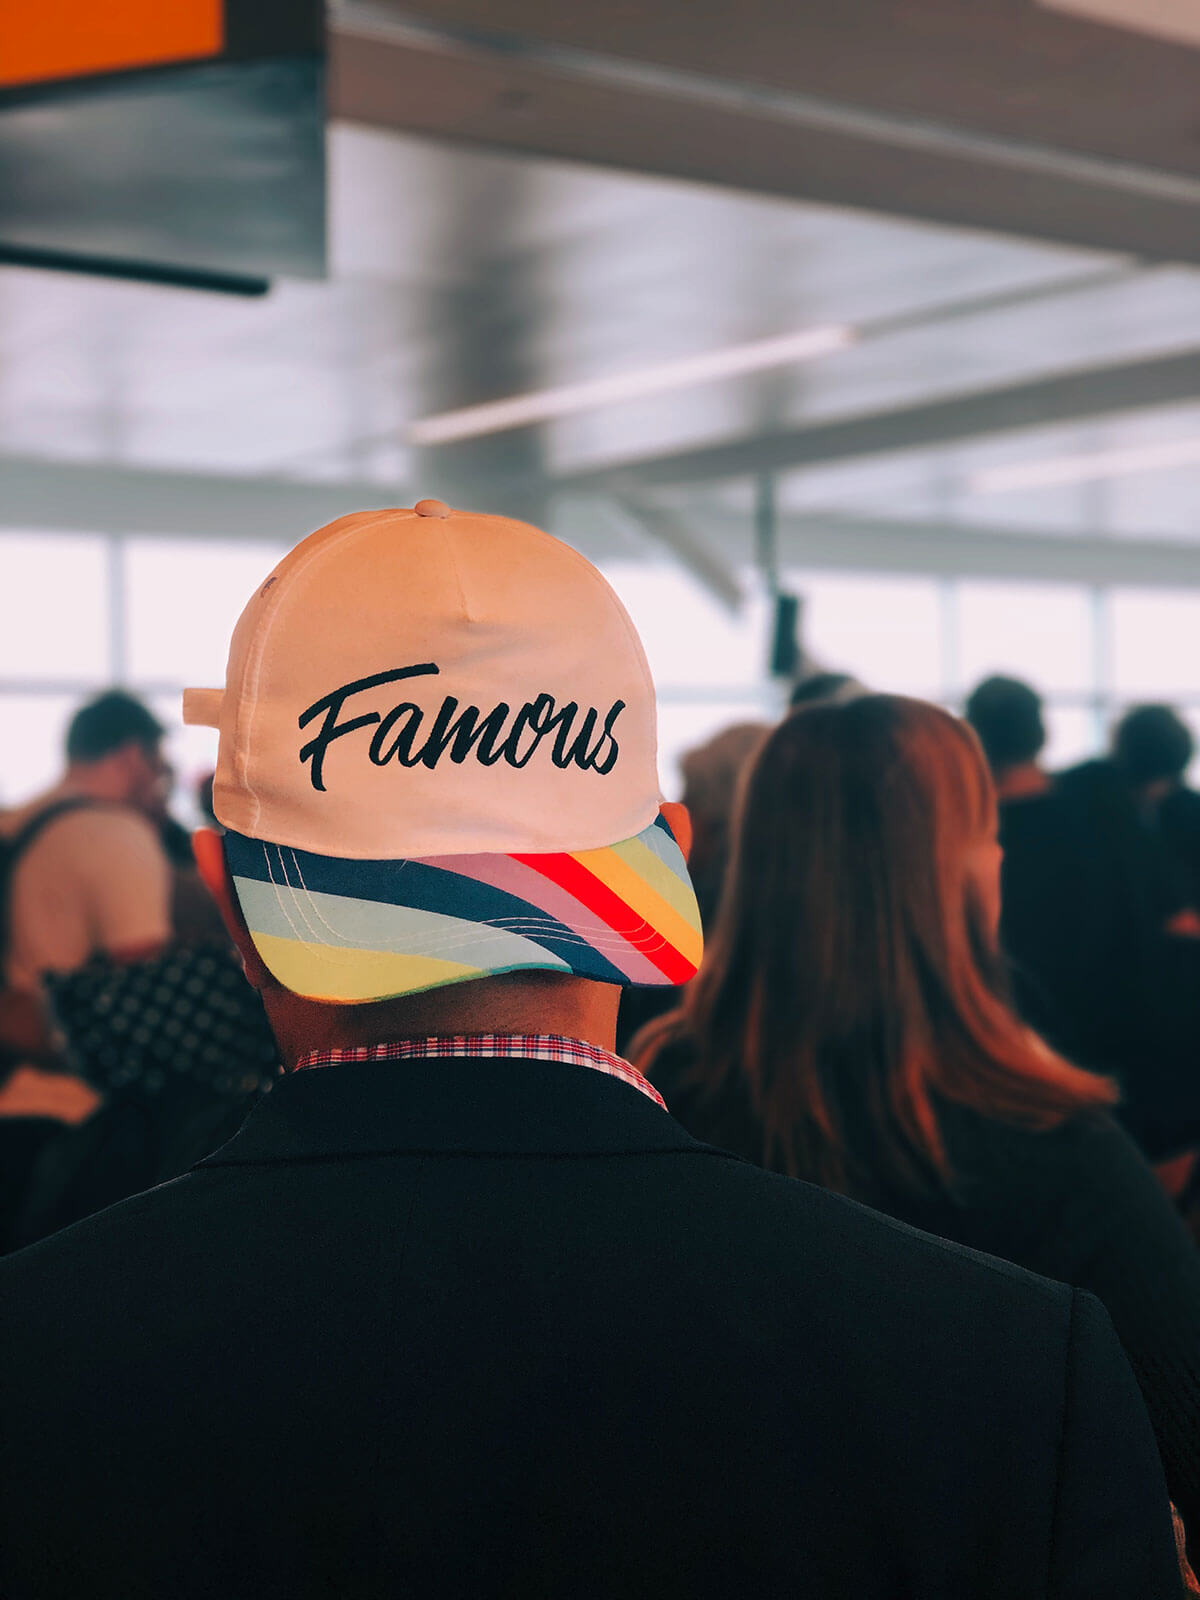 Man in a crowd wearing a white hat with the word 'Famous' printed on it.